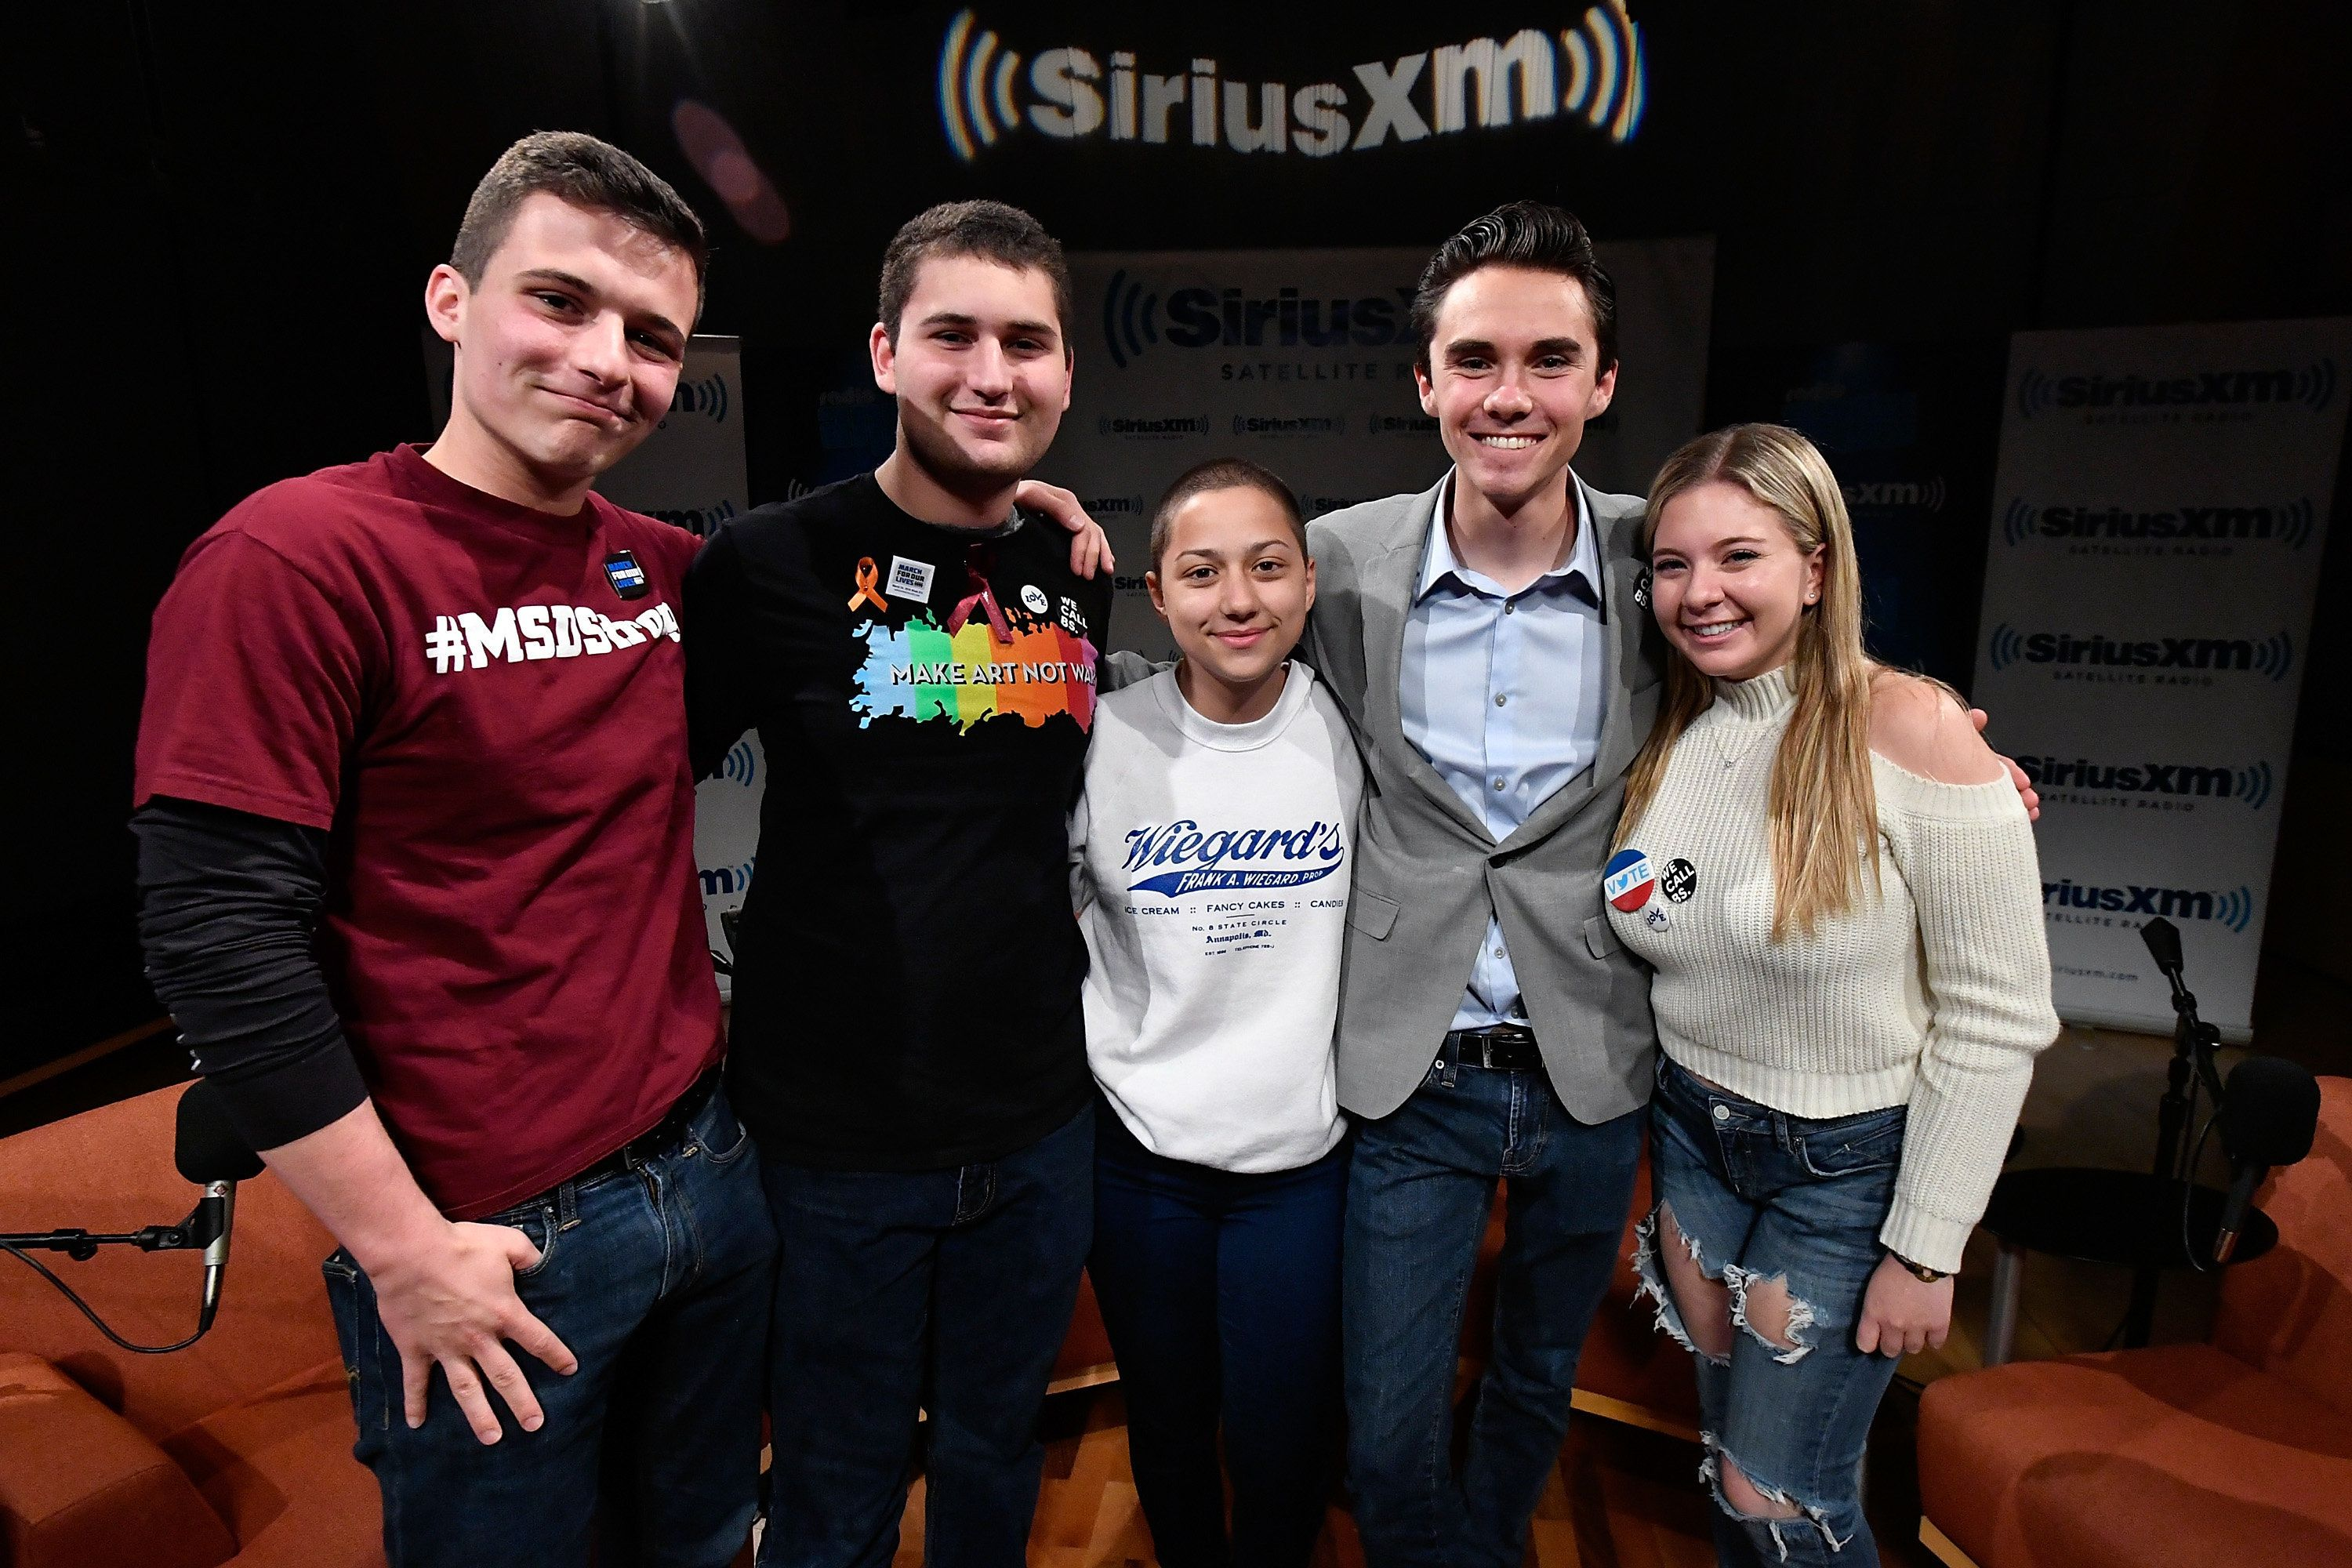 WASHINGTON, DC - MARCH 23:  Dan Rather hosts a SiriusXM Roundtable Special Event with Parkland, Florida, Marjory Stoneman Douglas High School Students and activists (L-R) Cameron Kasky, Alex Wind, Emma Gonzalez, David Hogg, and Jaclyn Corin at SiriusXM Studio on March 23, 2018 in Washington, DC.  (Photo by Larry French/Getty Images for SiriusXM)